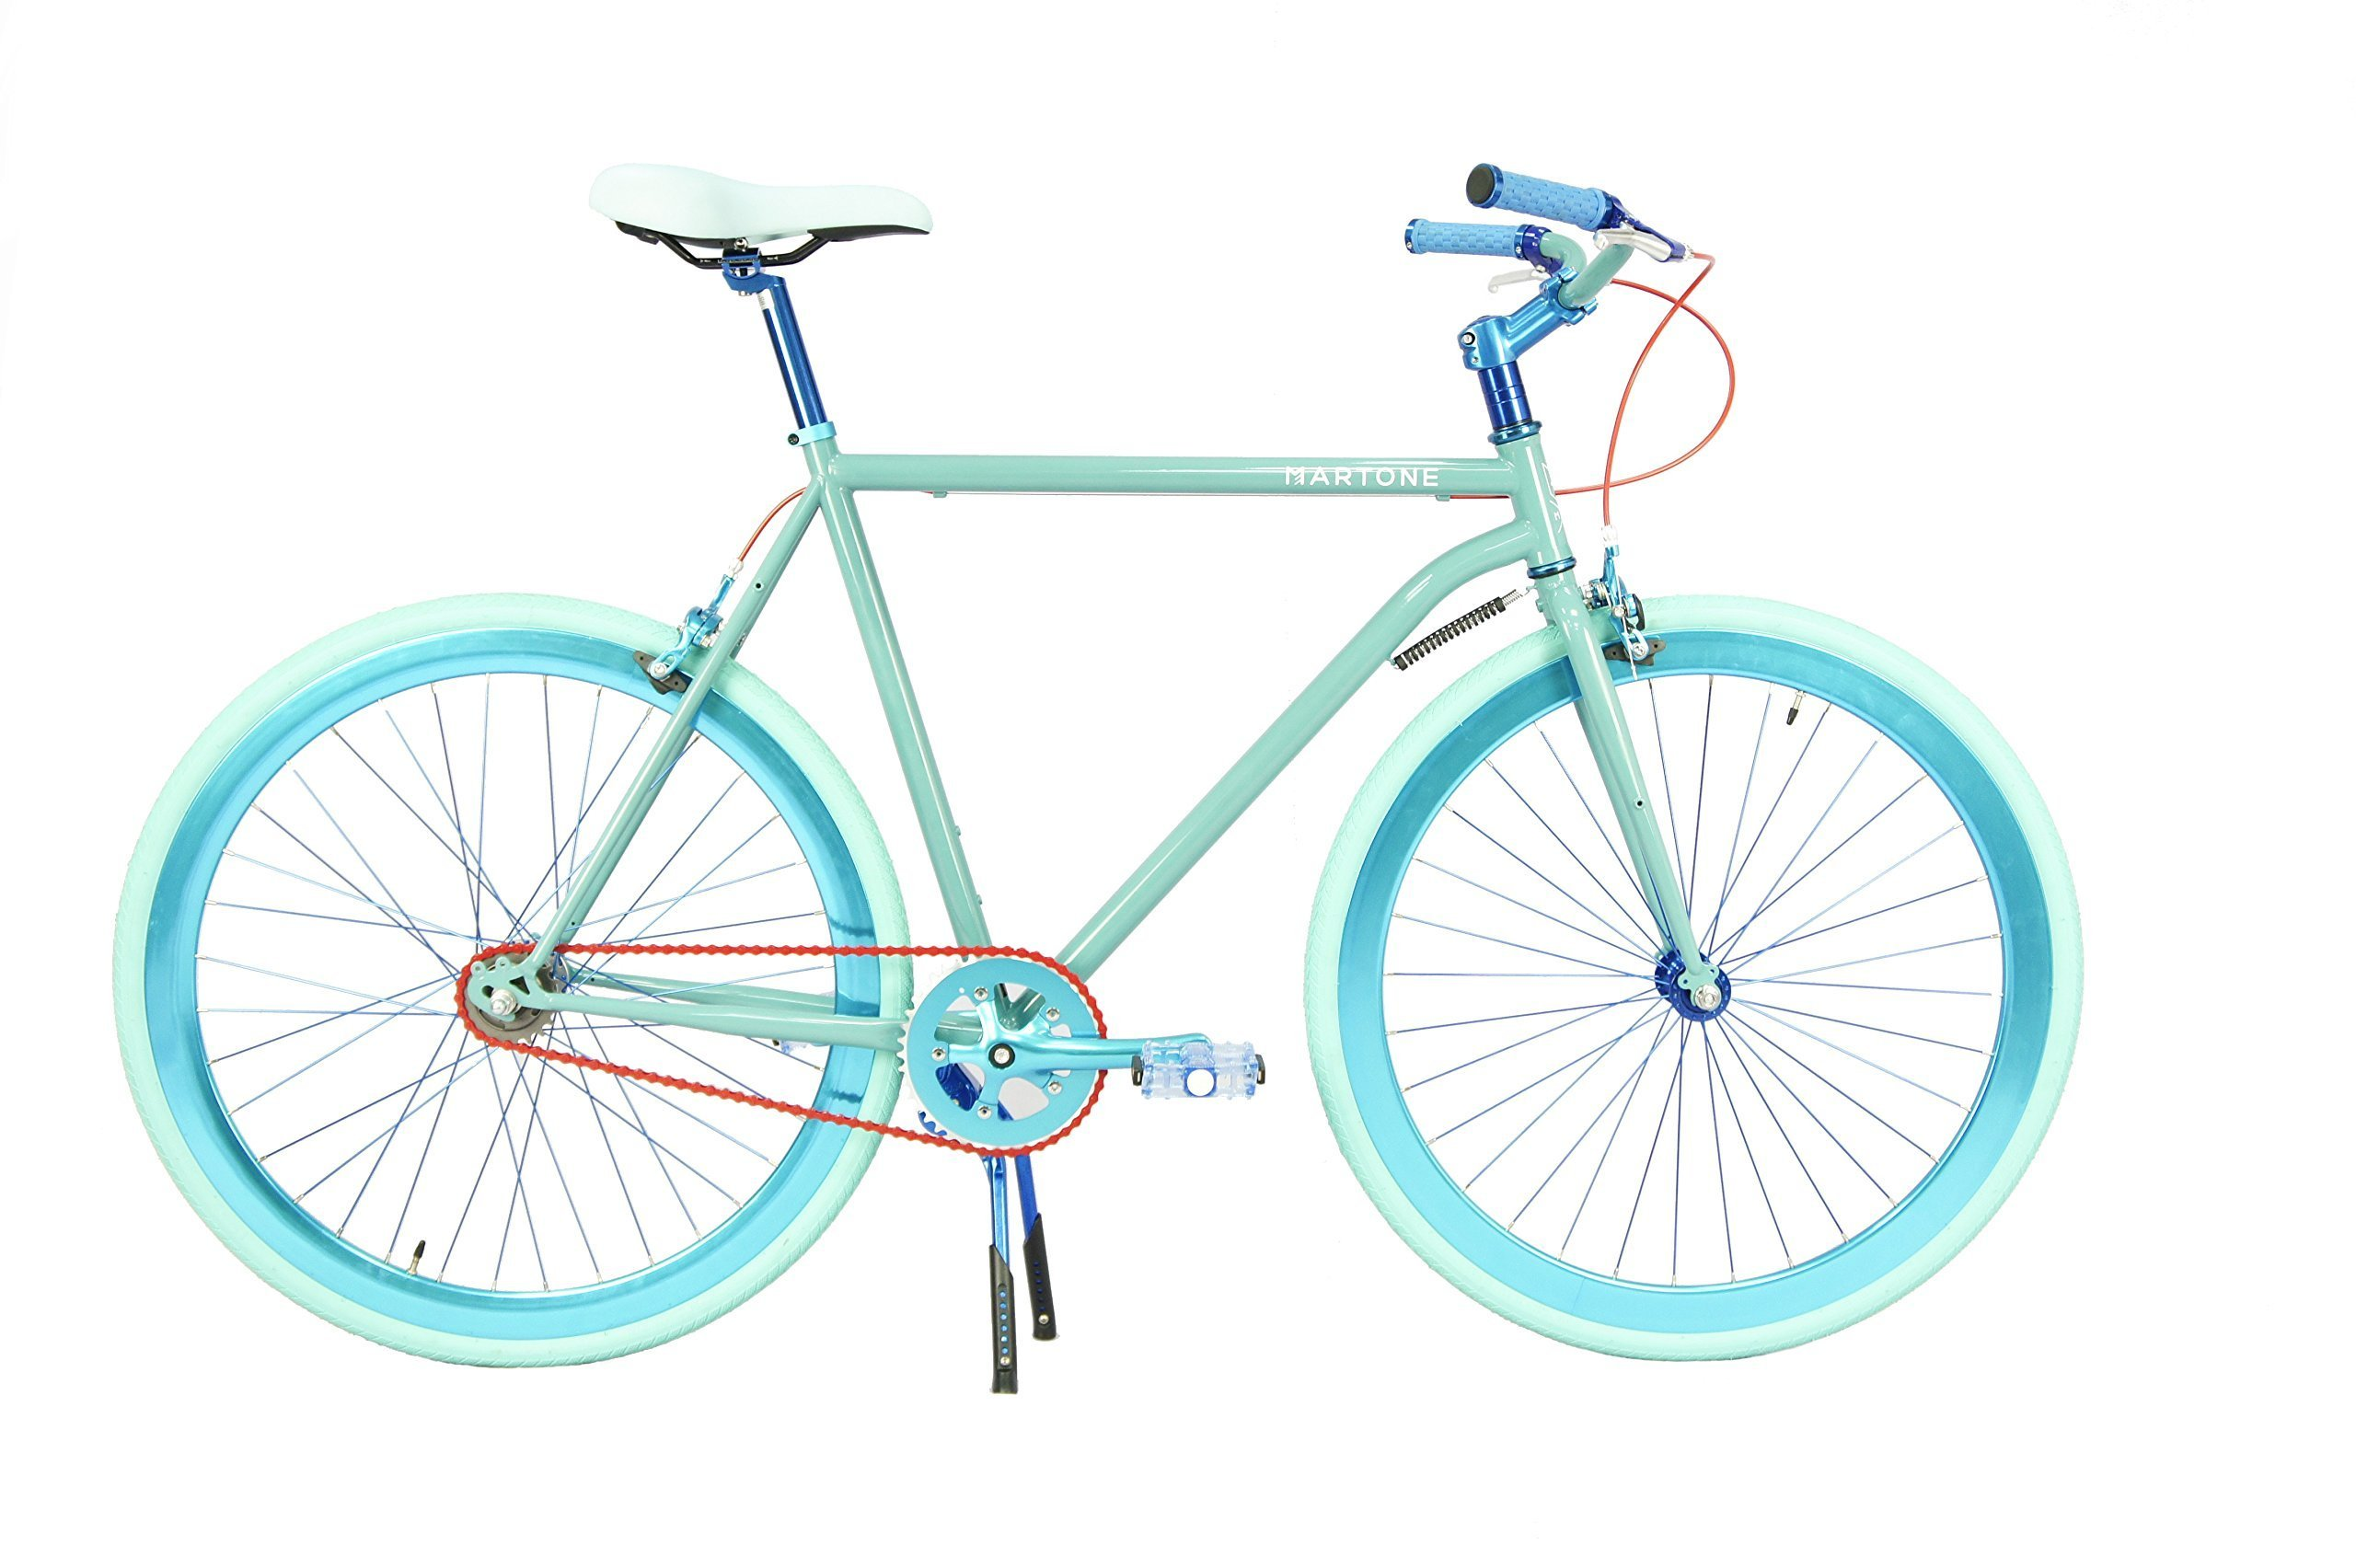 Martone Cycling Co. Men's Pacific Bicycle 52 Diamond Frame, Blue, 52cm/One Size